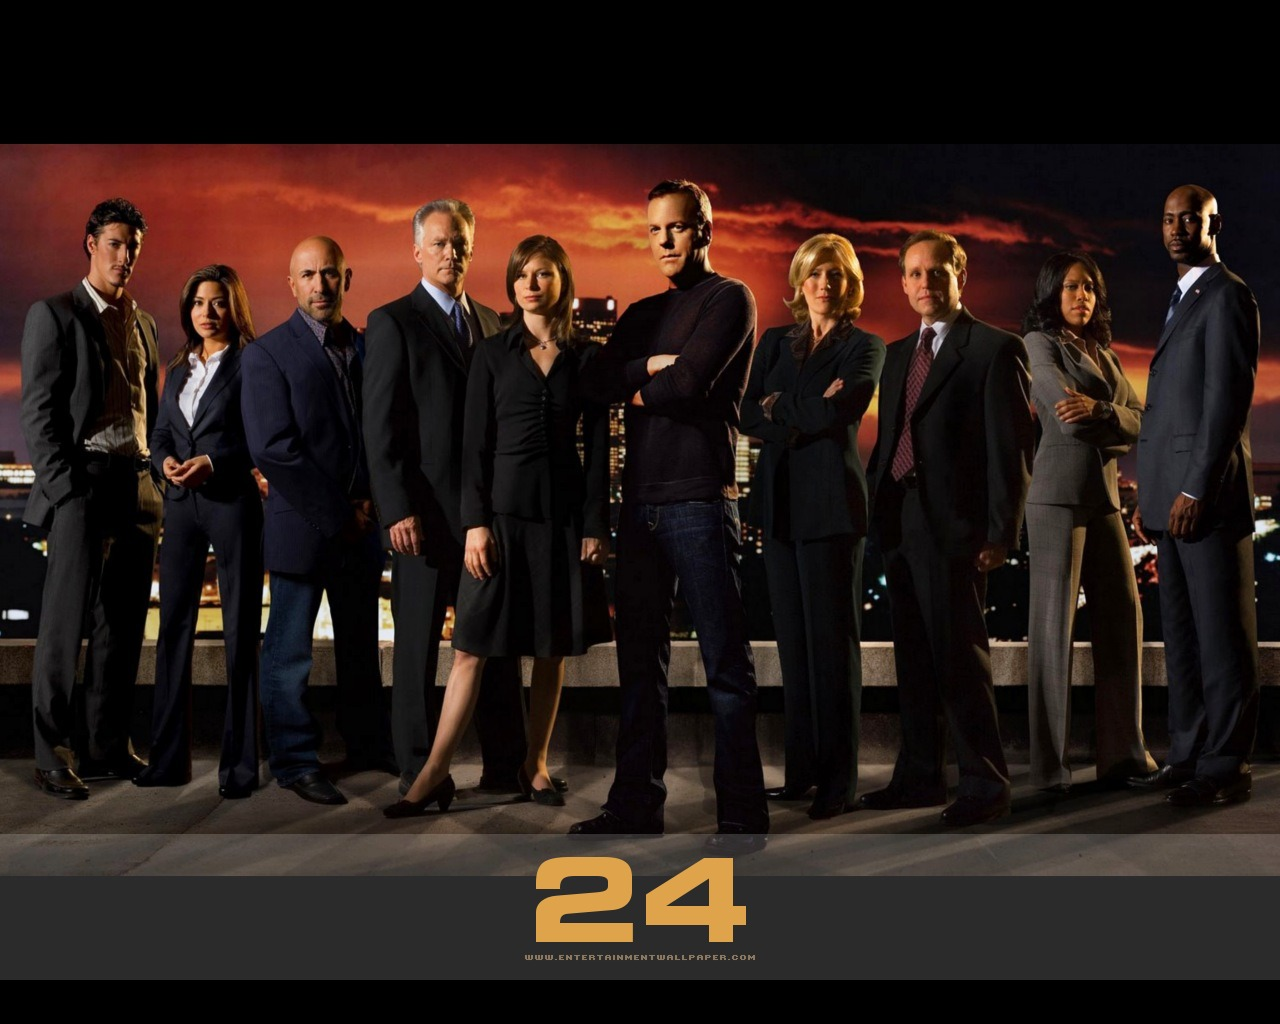 Crazy Video Spot: Watch 24 Season 8 Episode 20 Series - Day